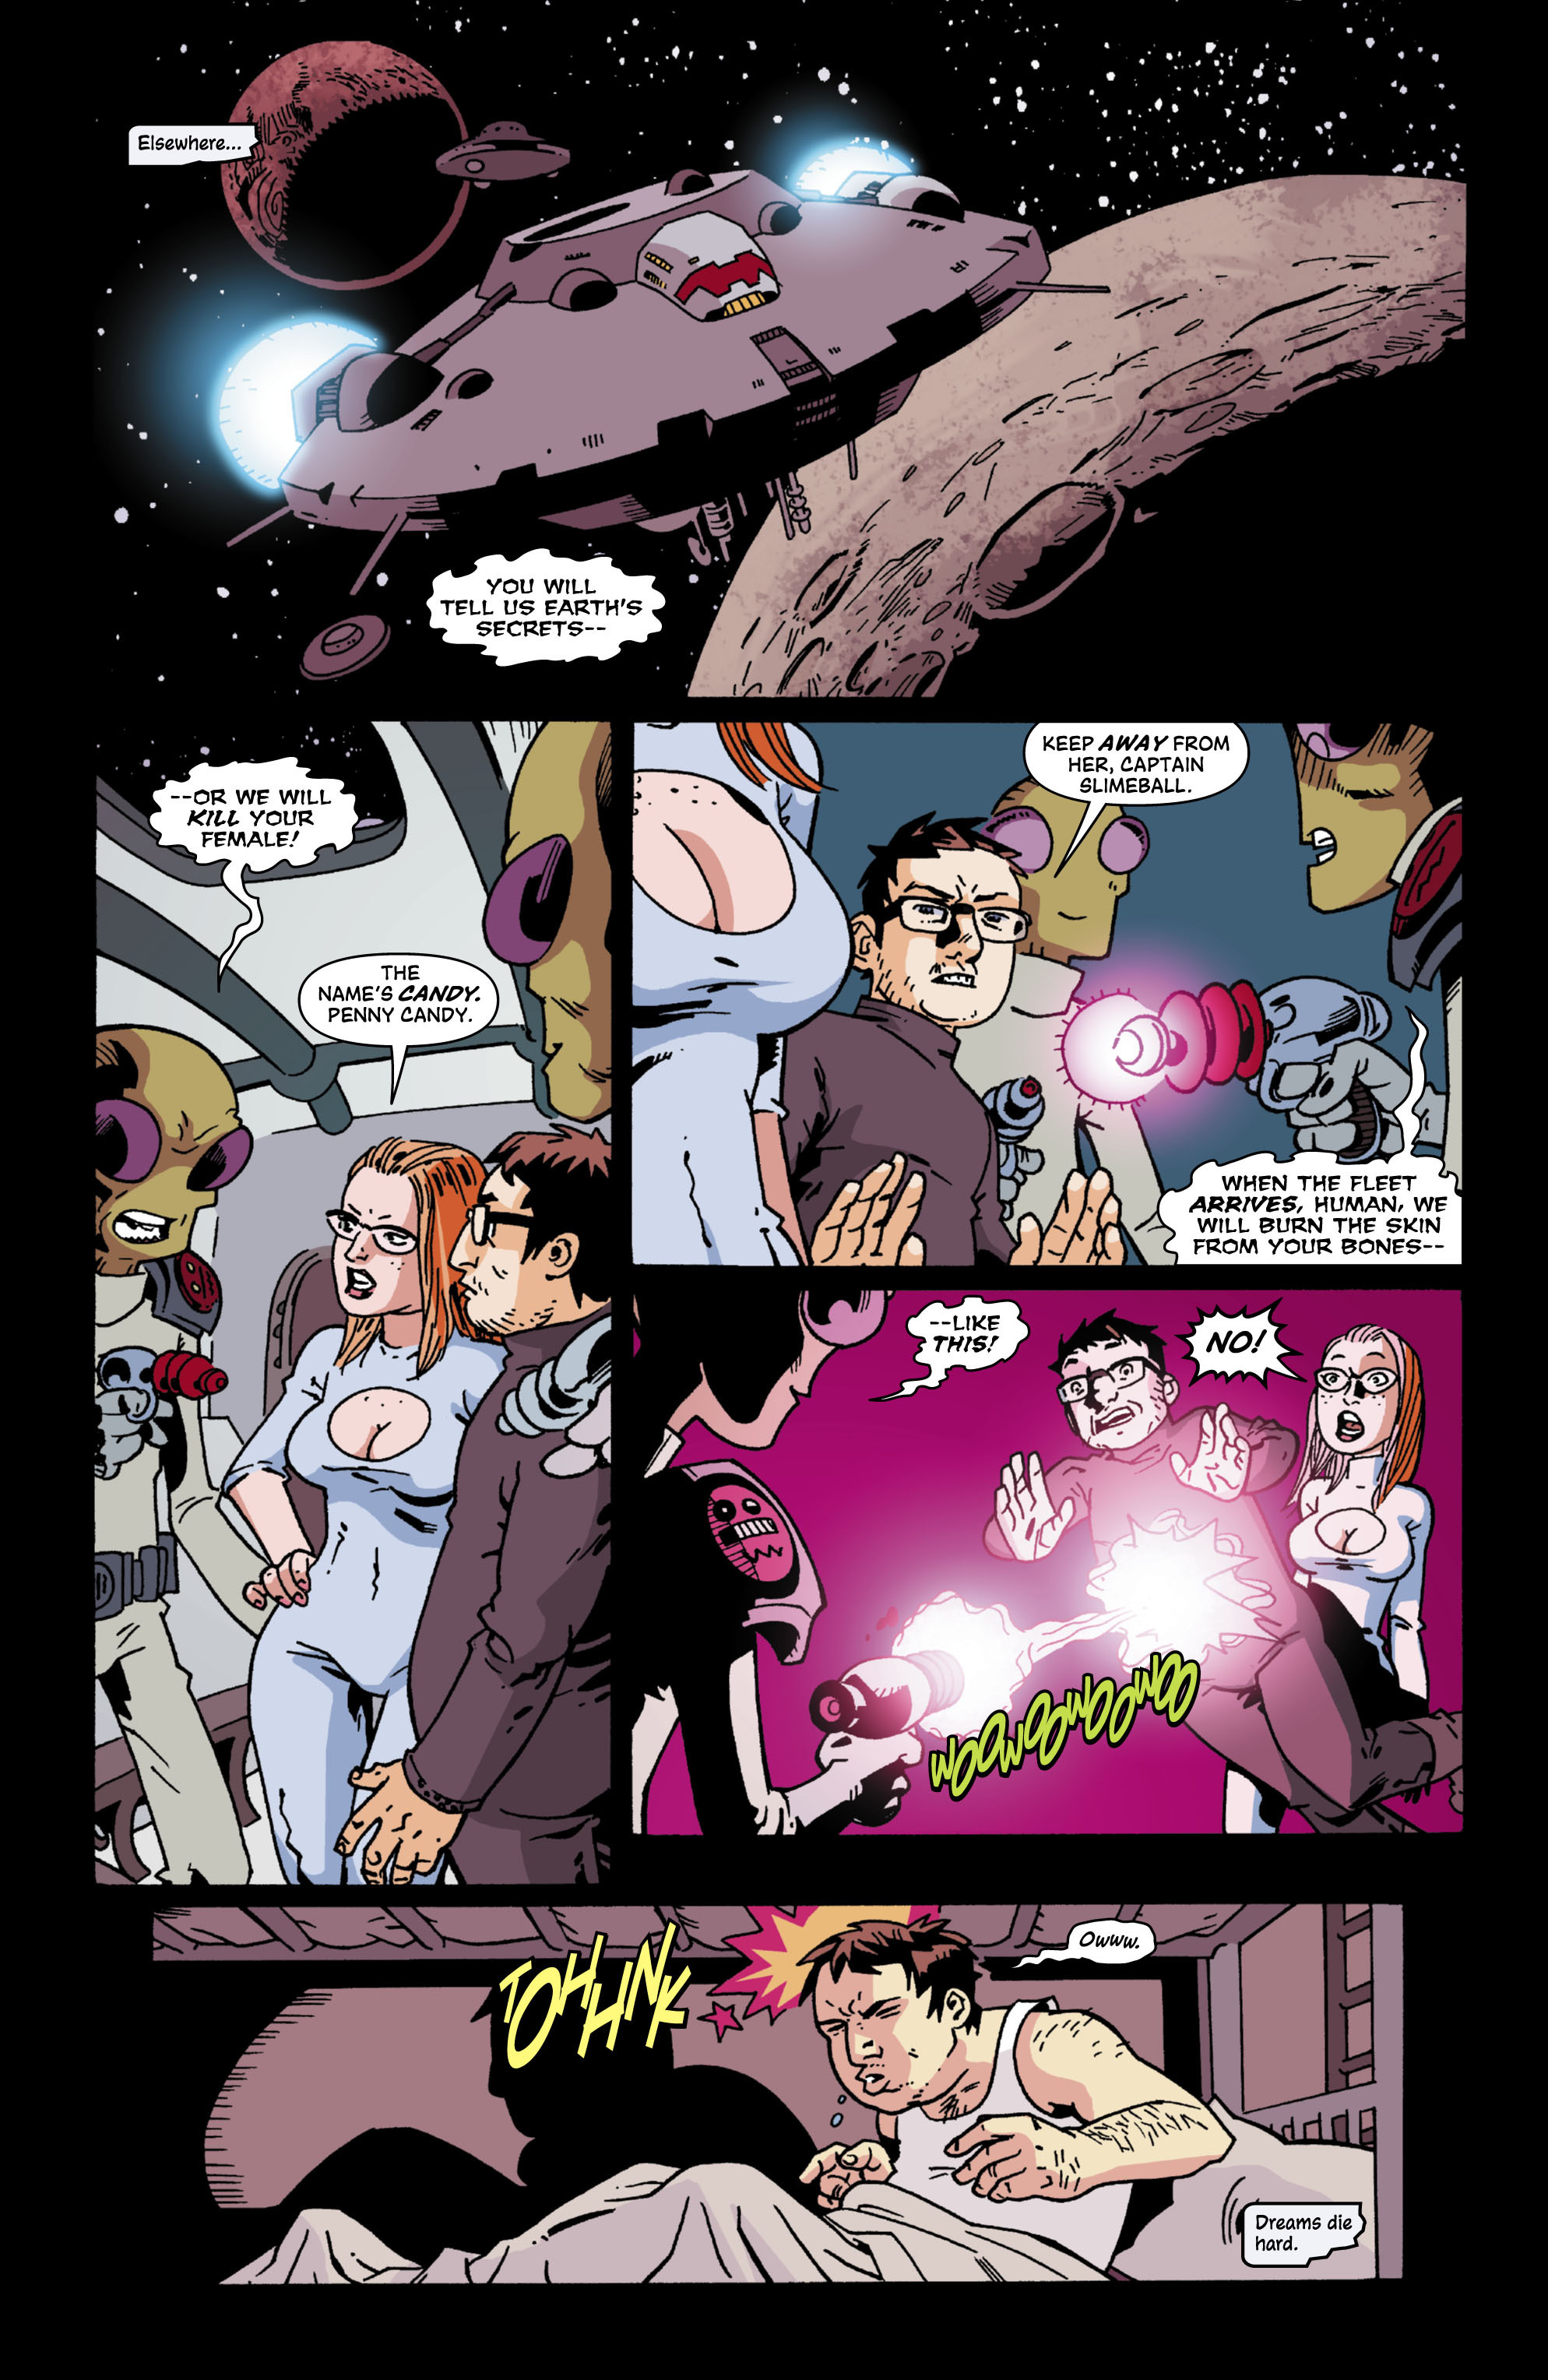 Read online Red Herring comic -  Issue #6 - 7